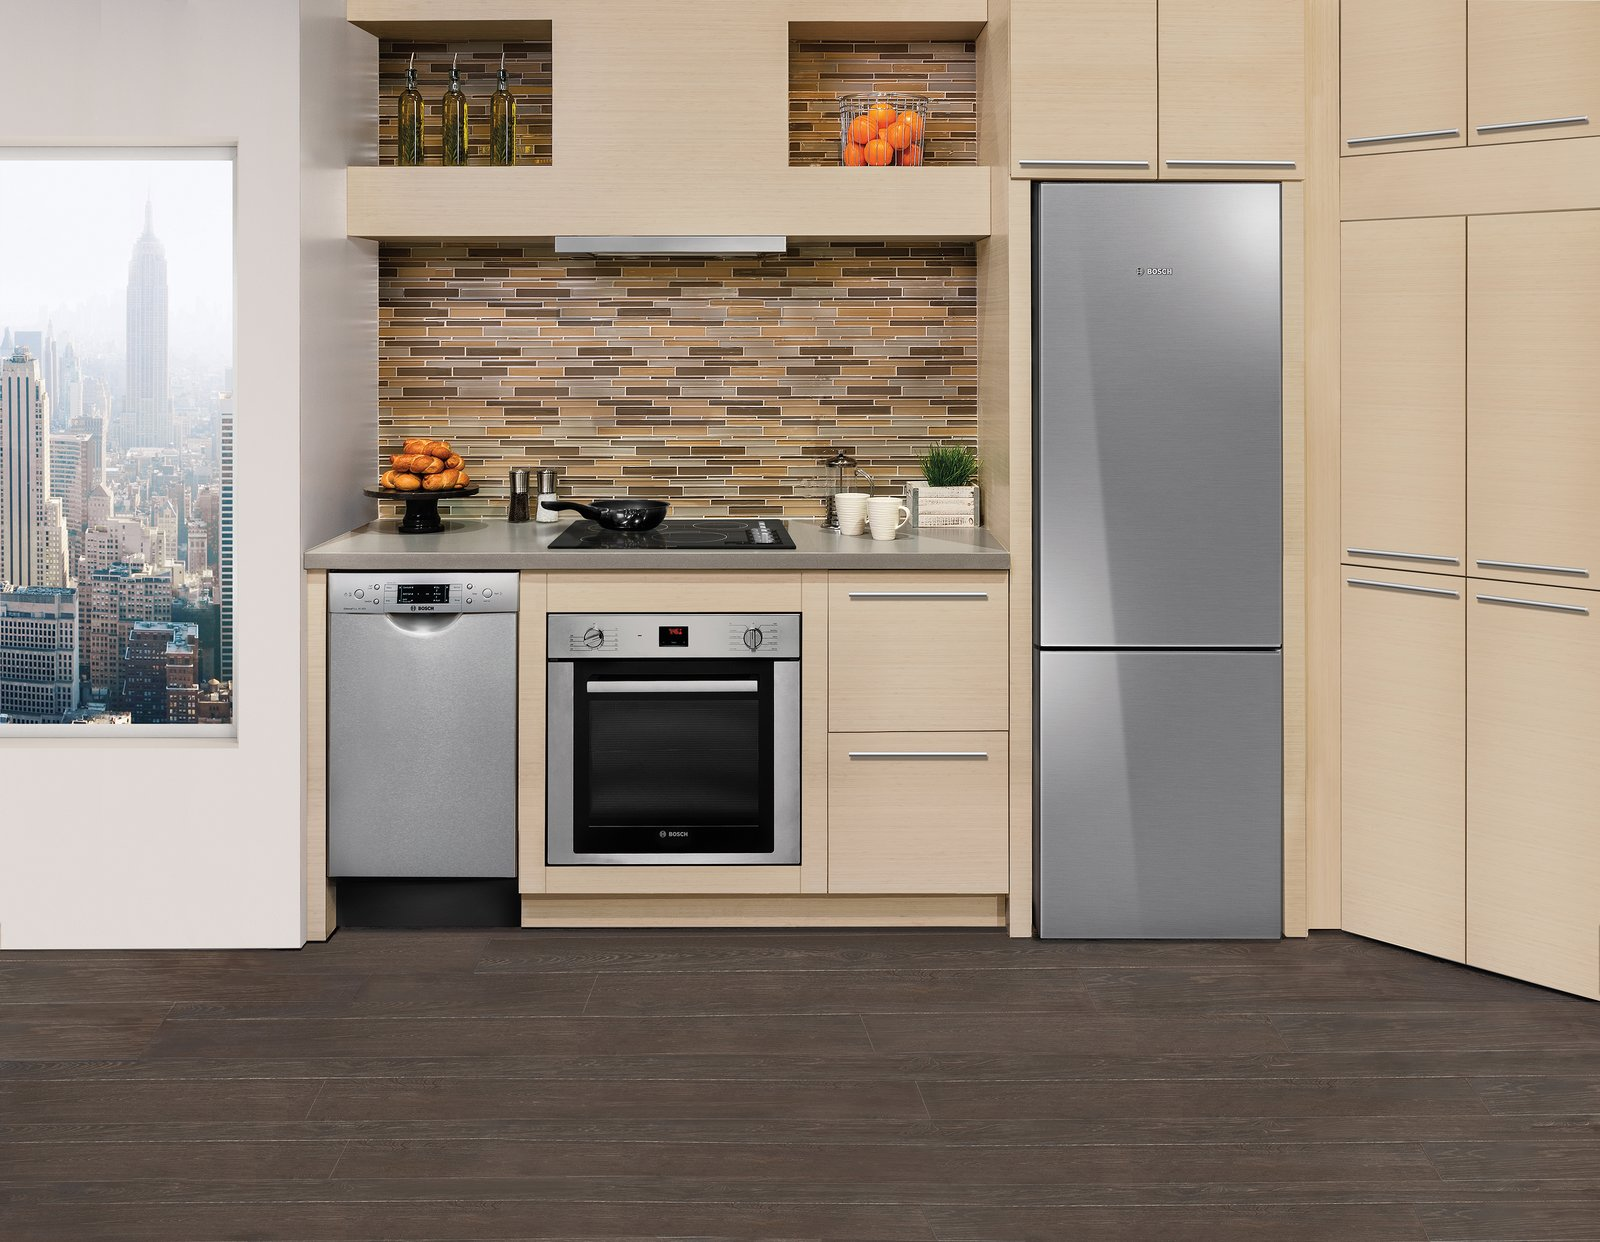 Bosch's compact kitchen line, which includes an electric and gas cooktop, wall oven, and refrigerator, as well as an 18  Photo 4 of 7 in Bosch's Streamlined Kitchen and Laundry Appliances Are Made for Small Spaces